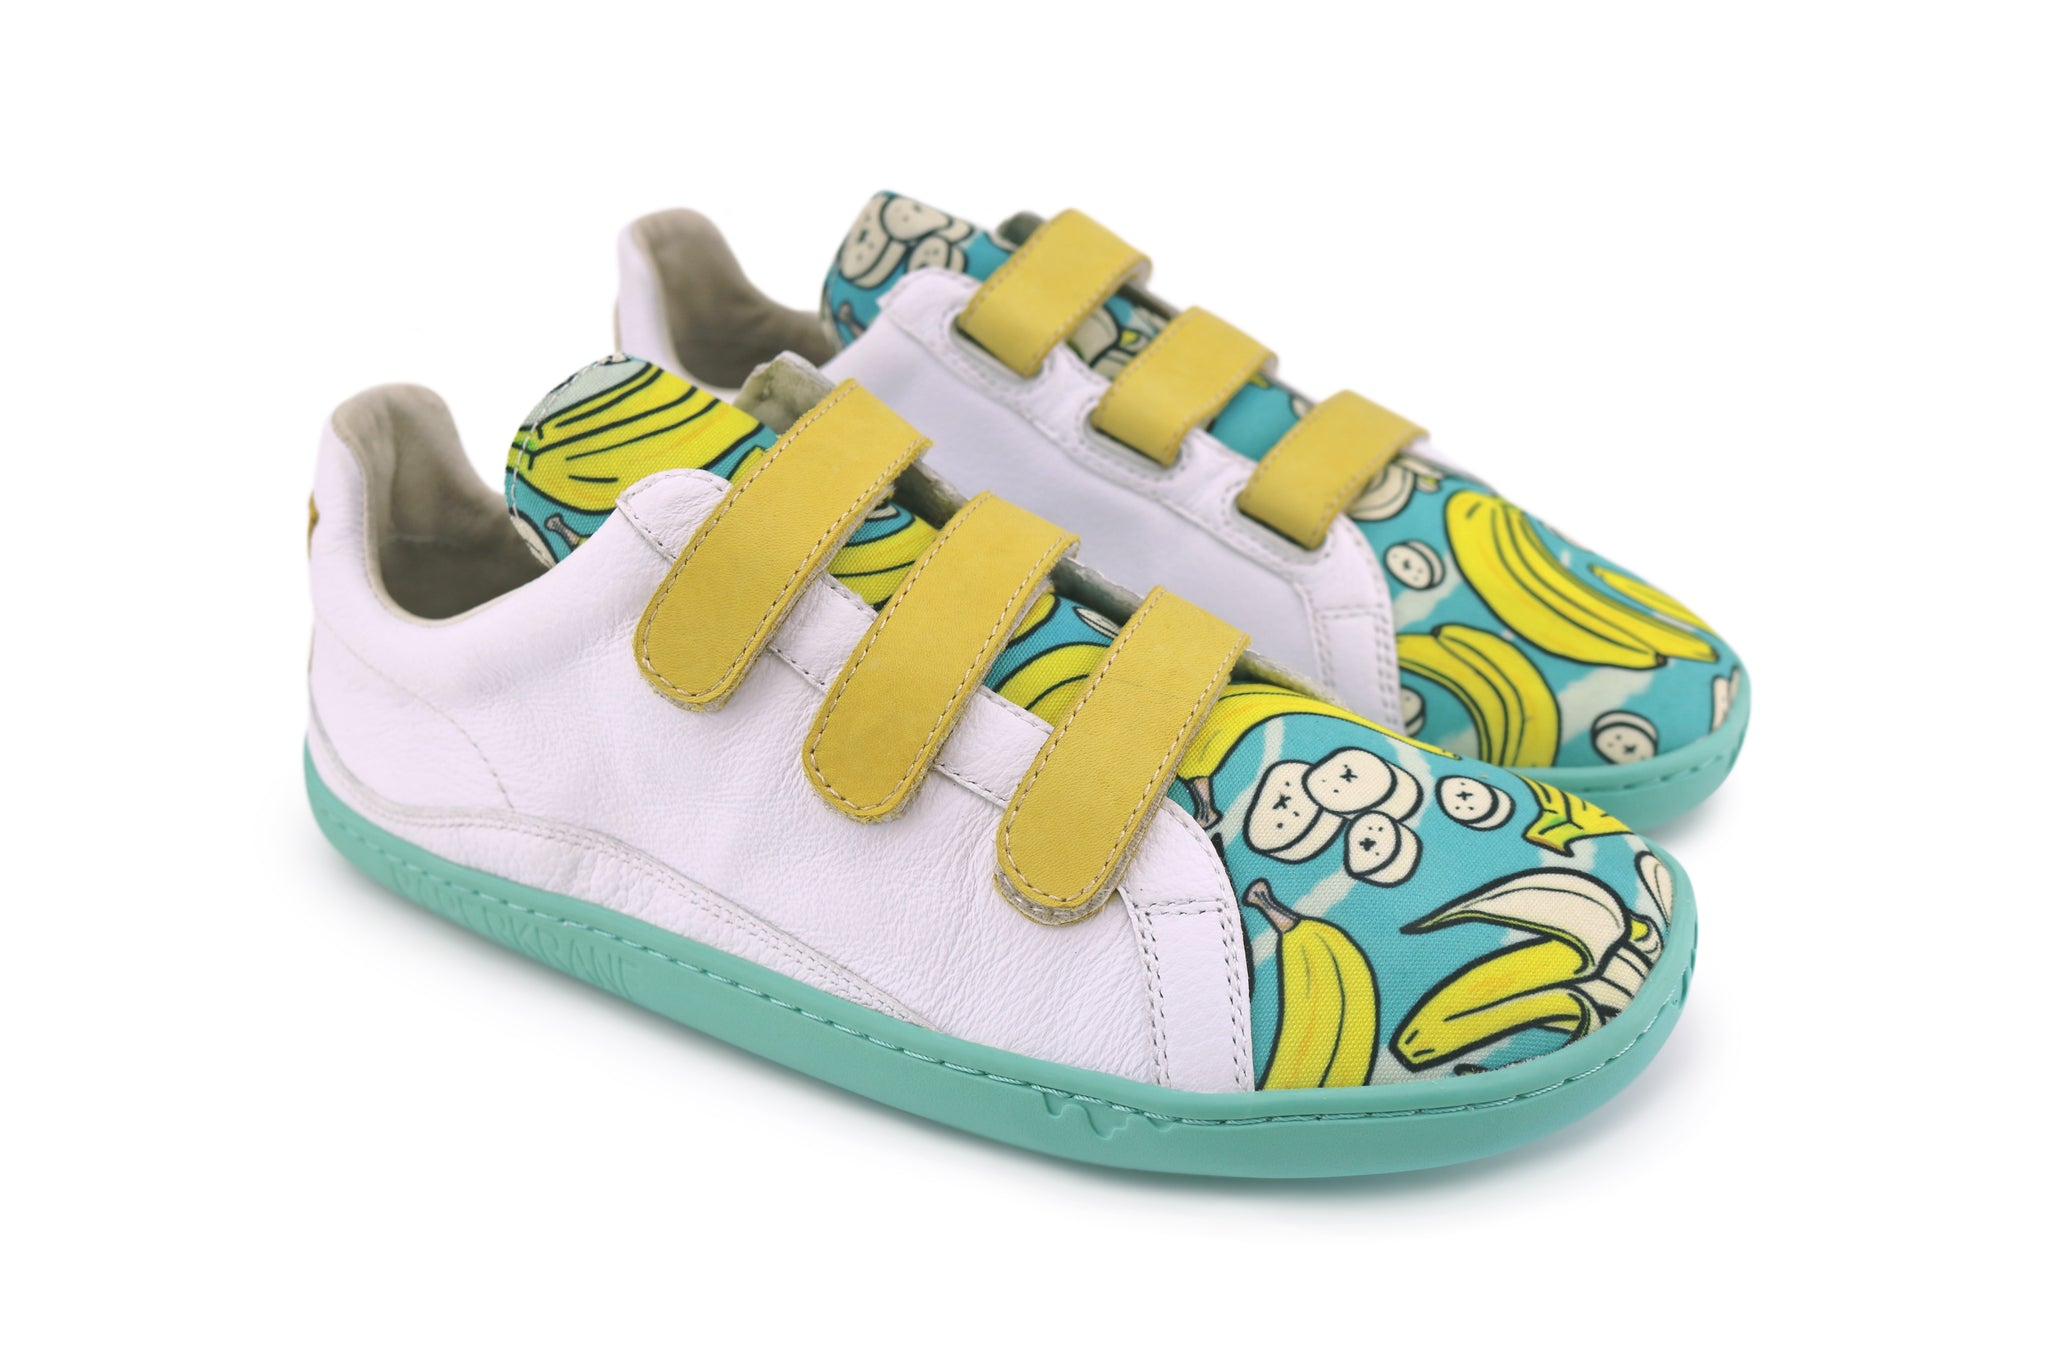 PaperKrane velcro style shoe with banana print on the front